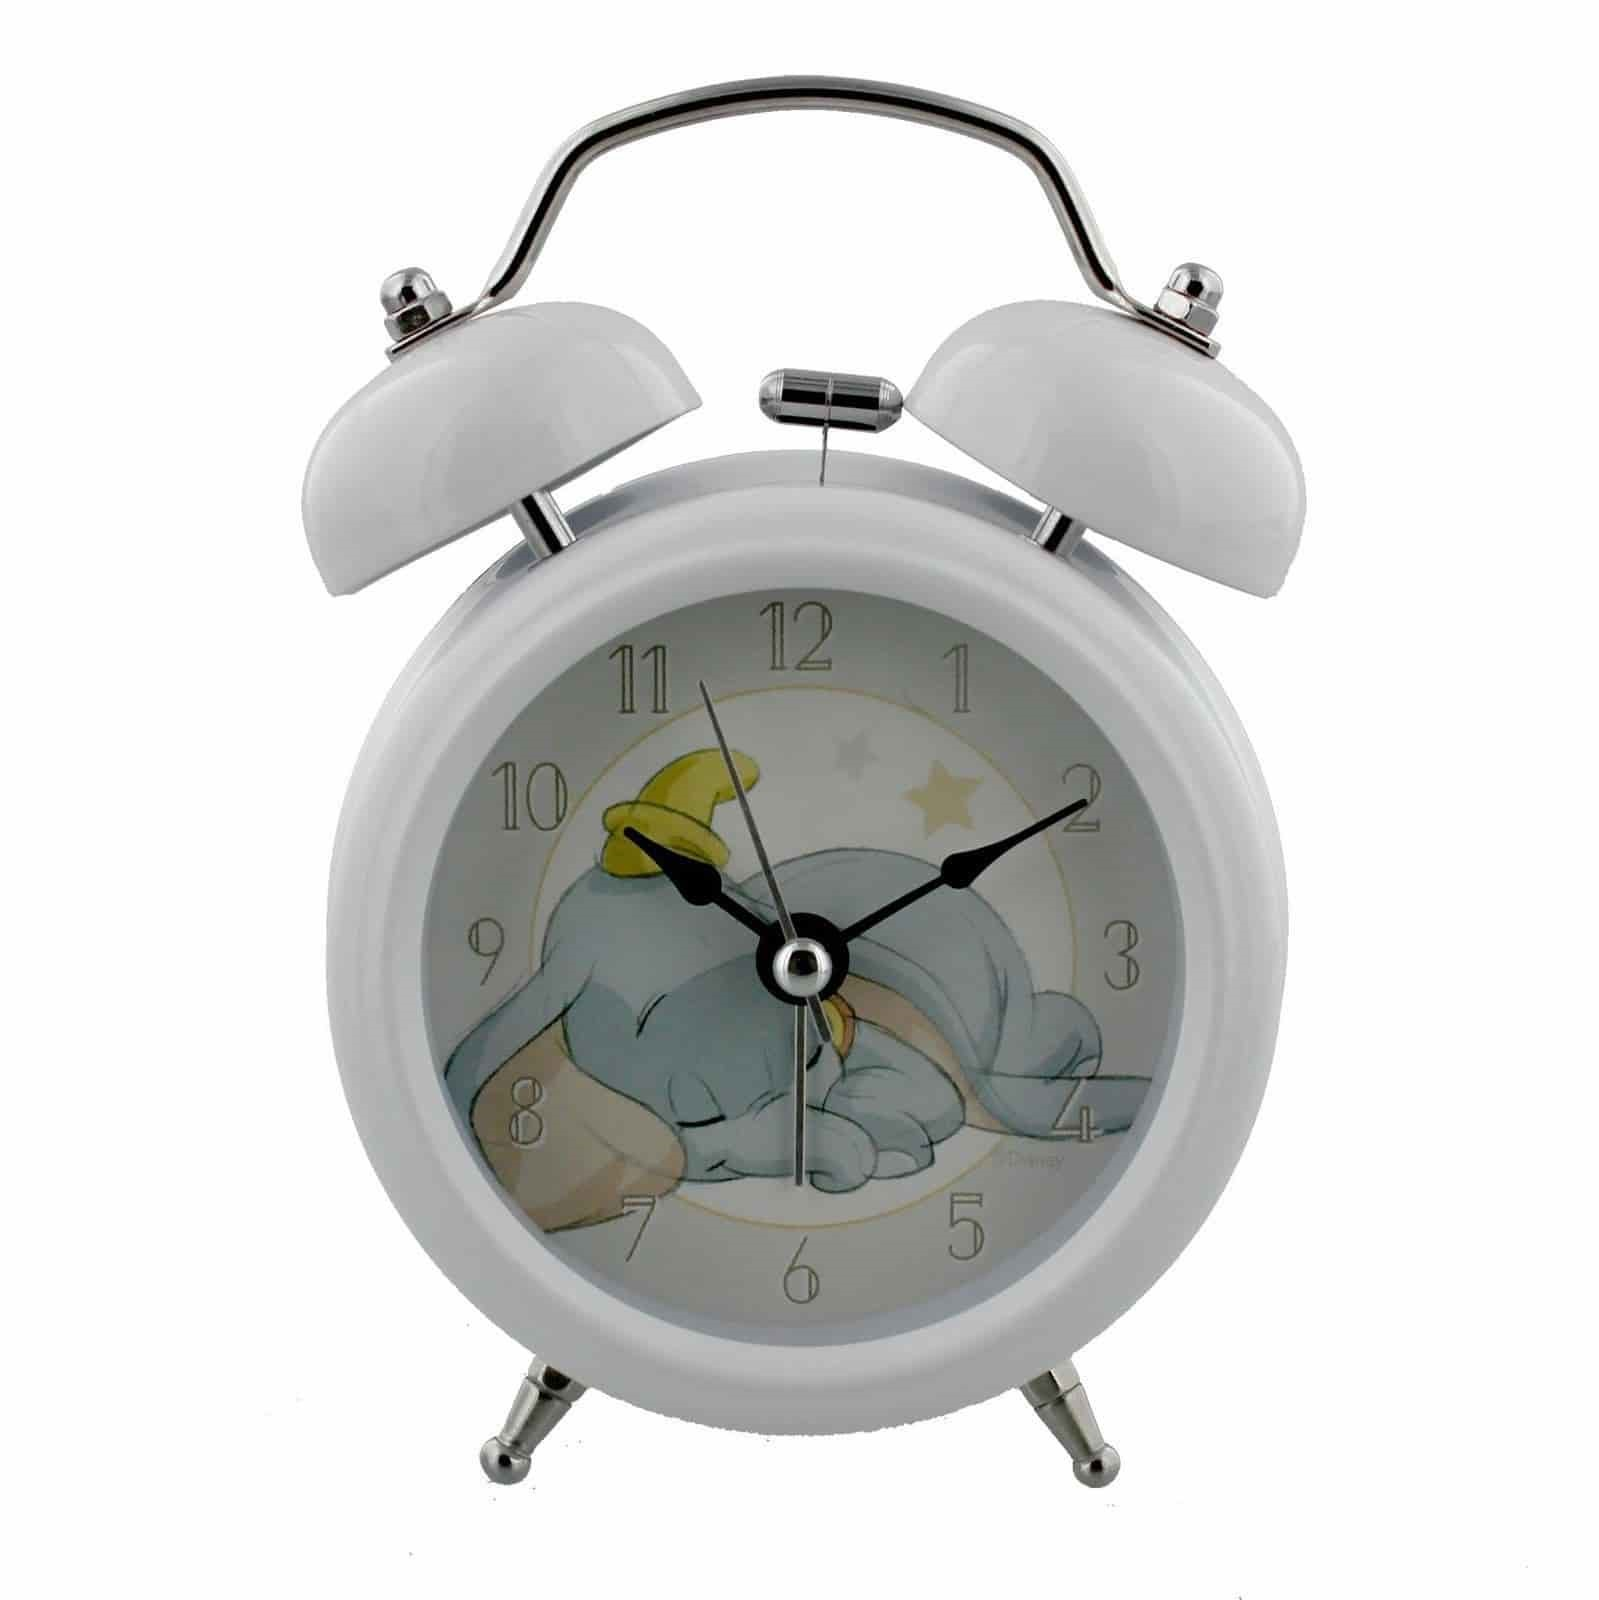 DISNEY DUMBO WHITE ALARM BELL CLOCK